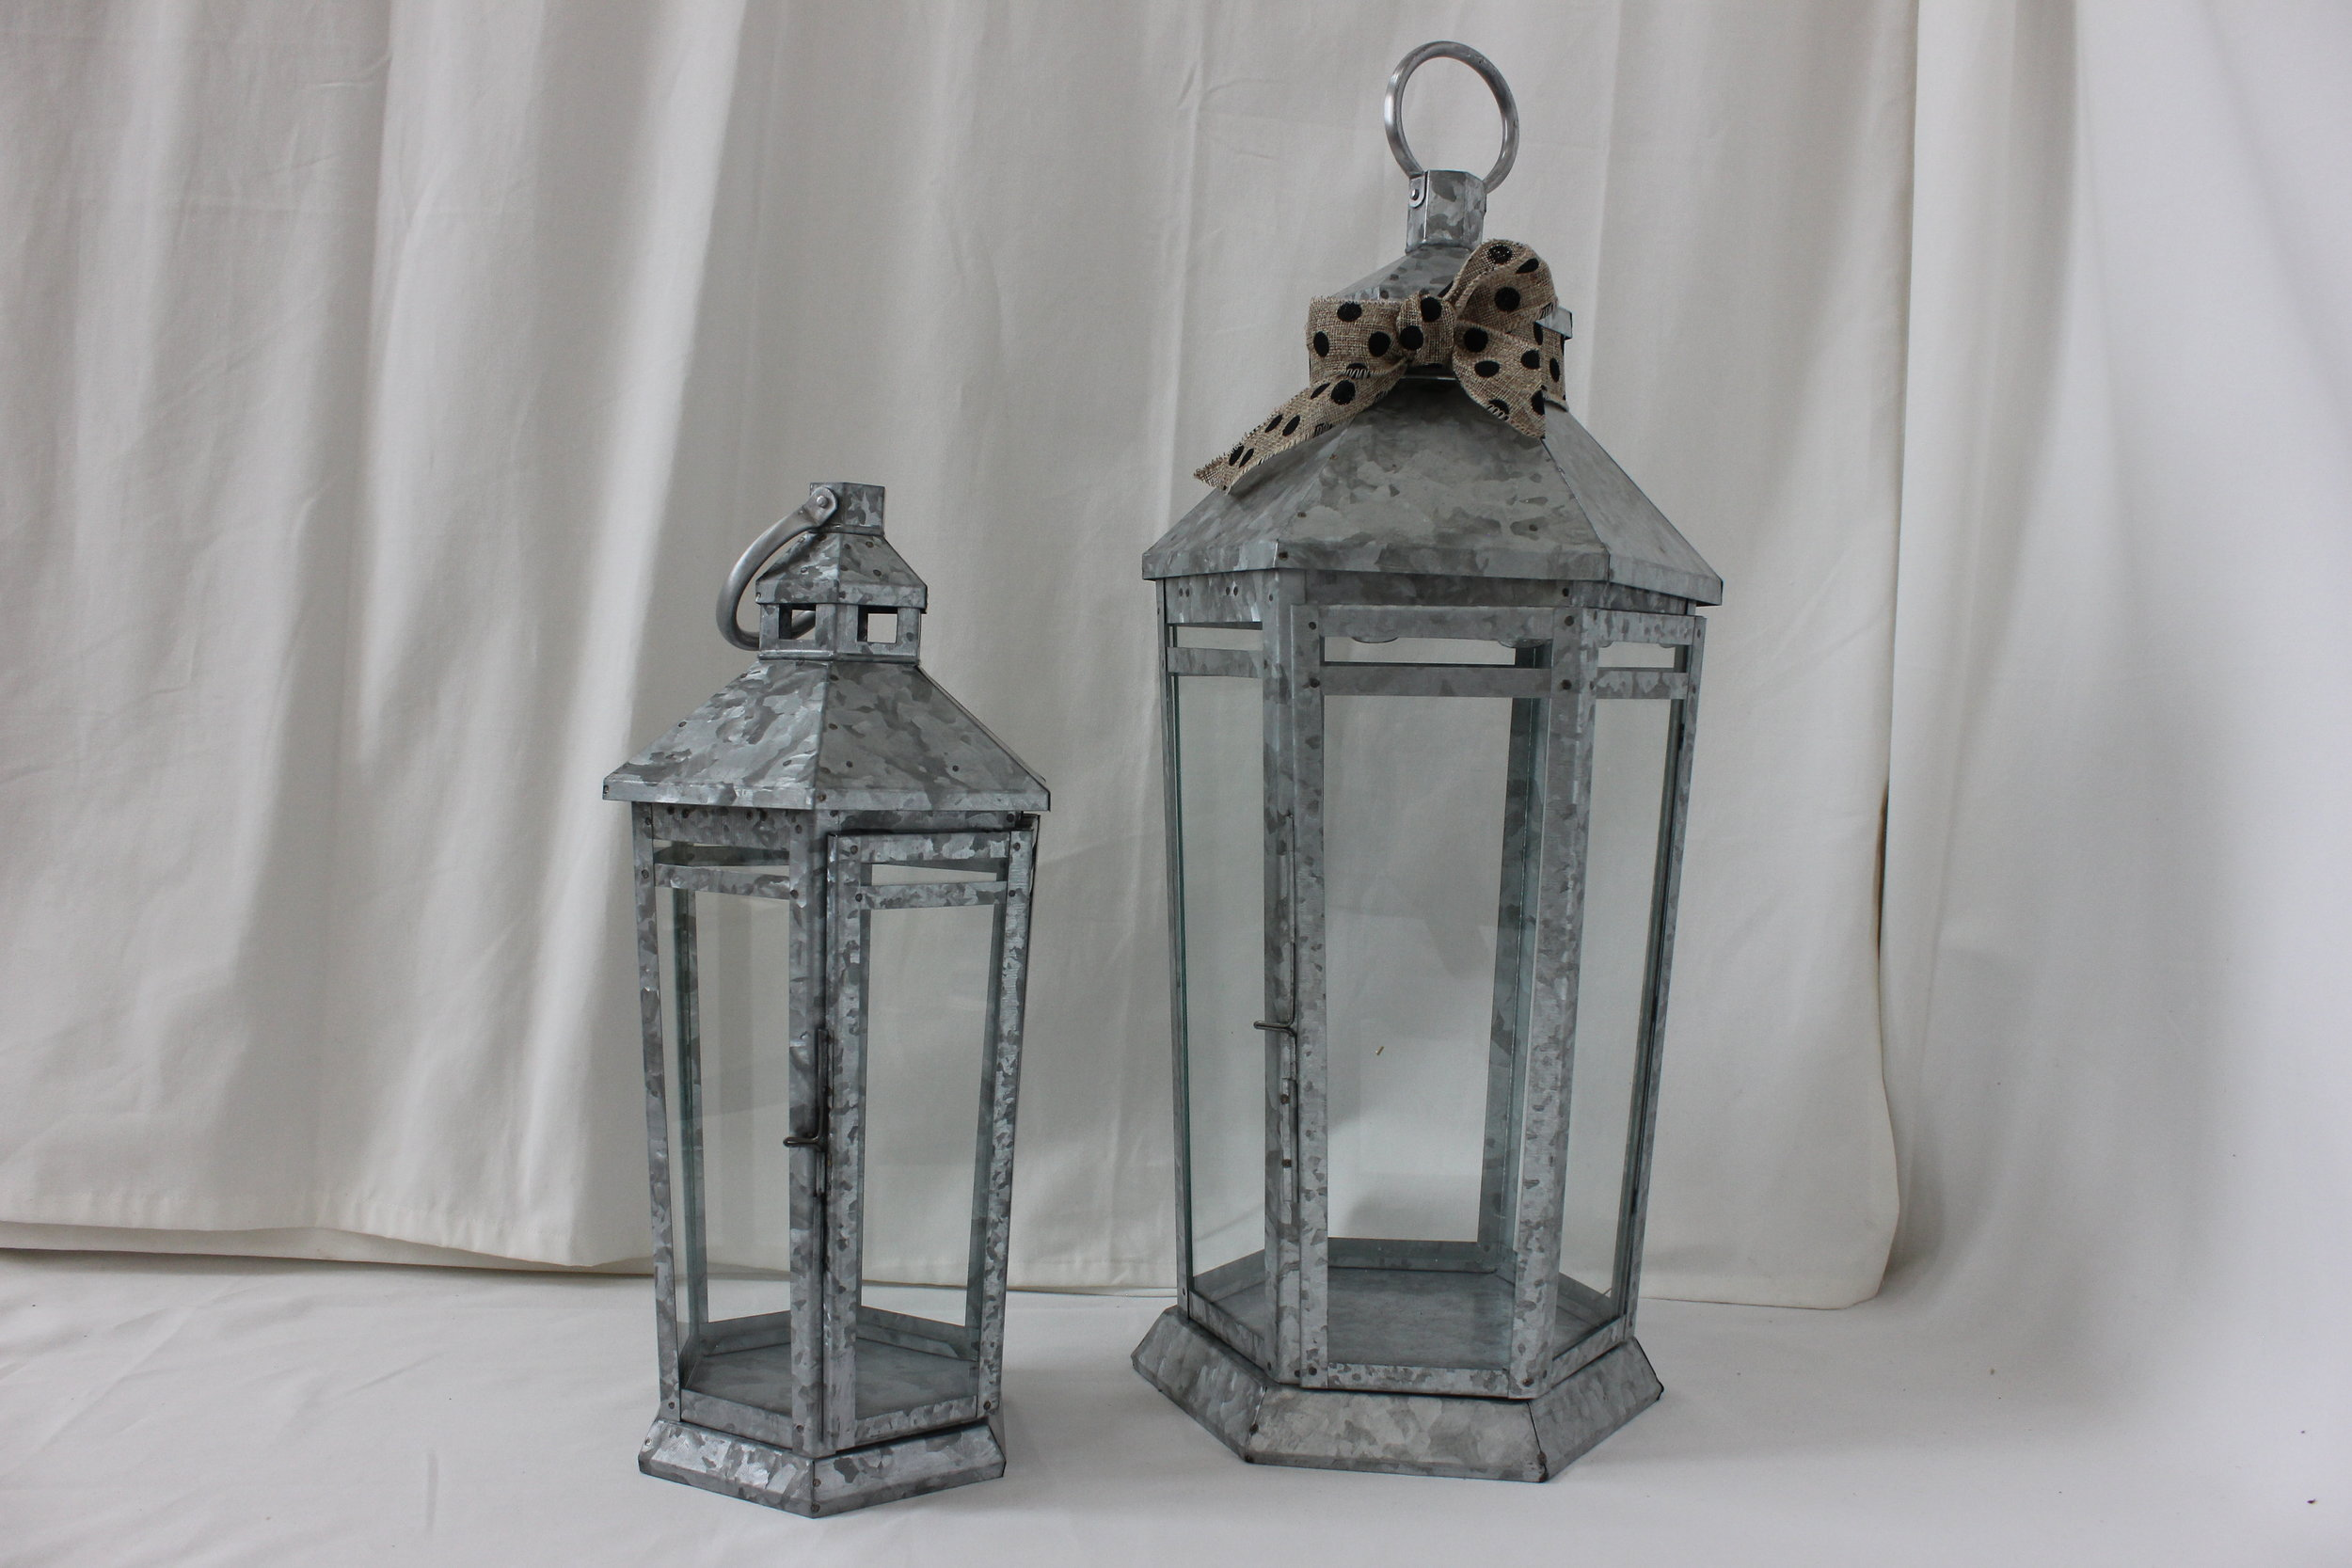 Galavanized Lanterns